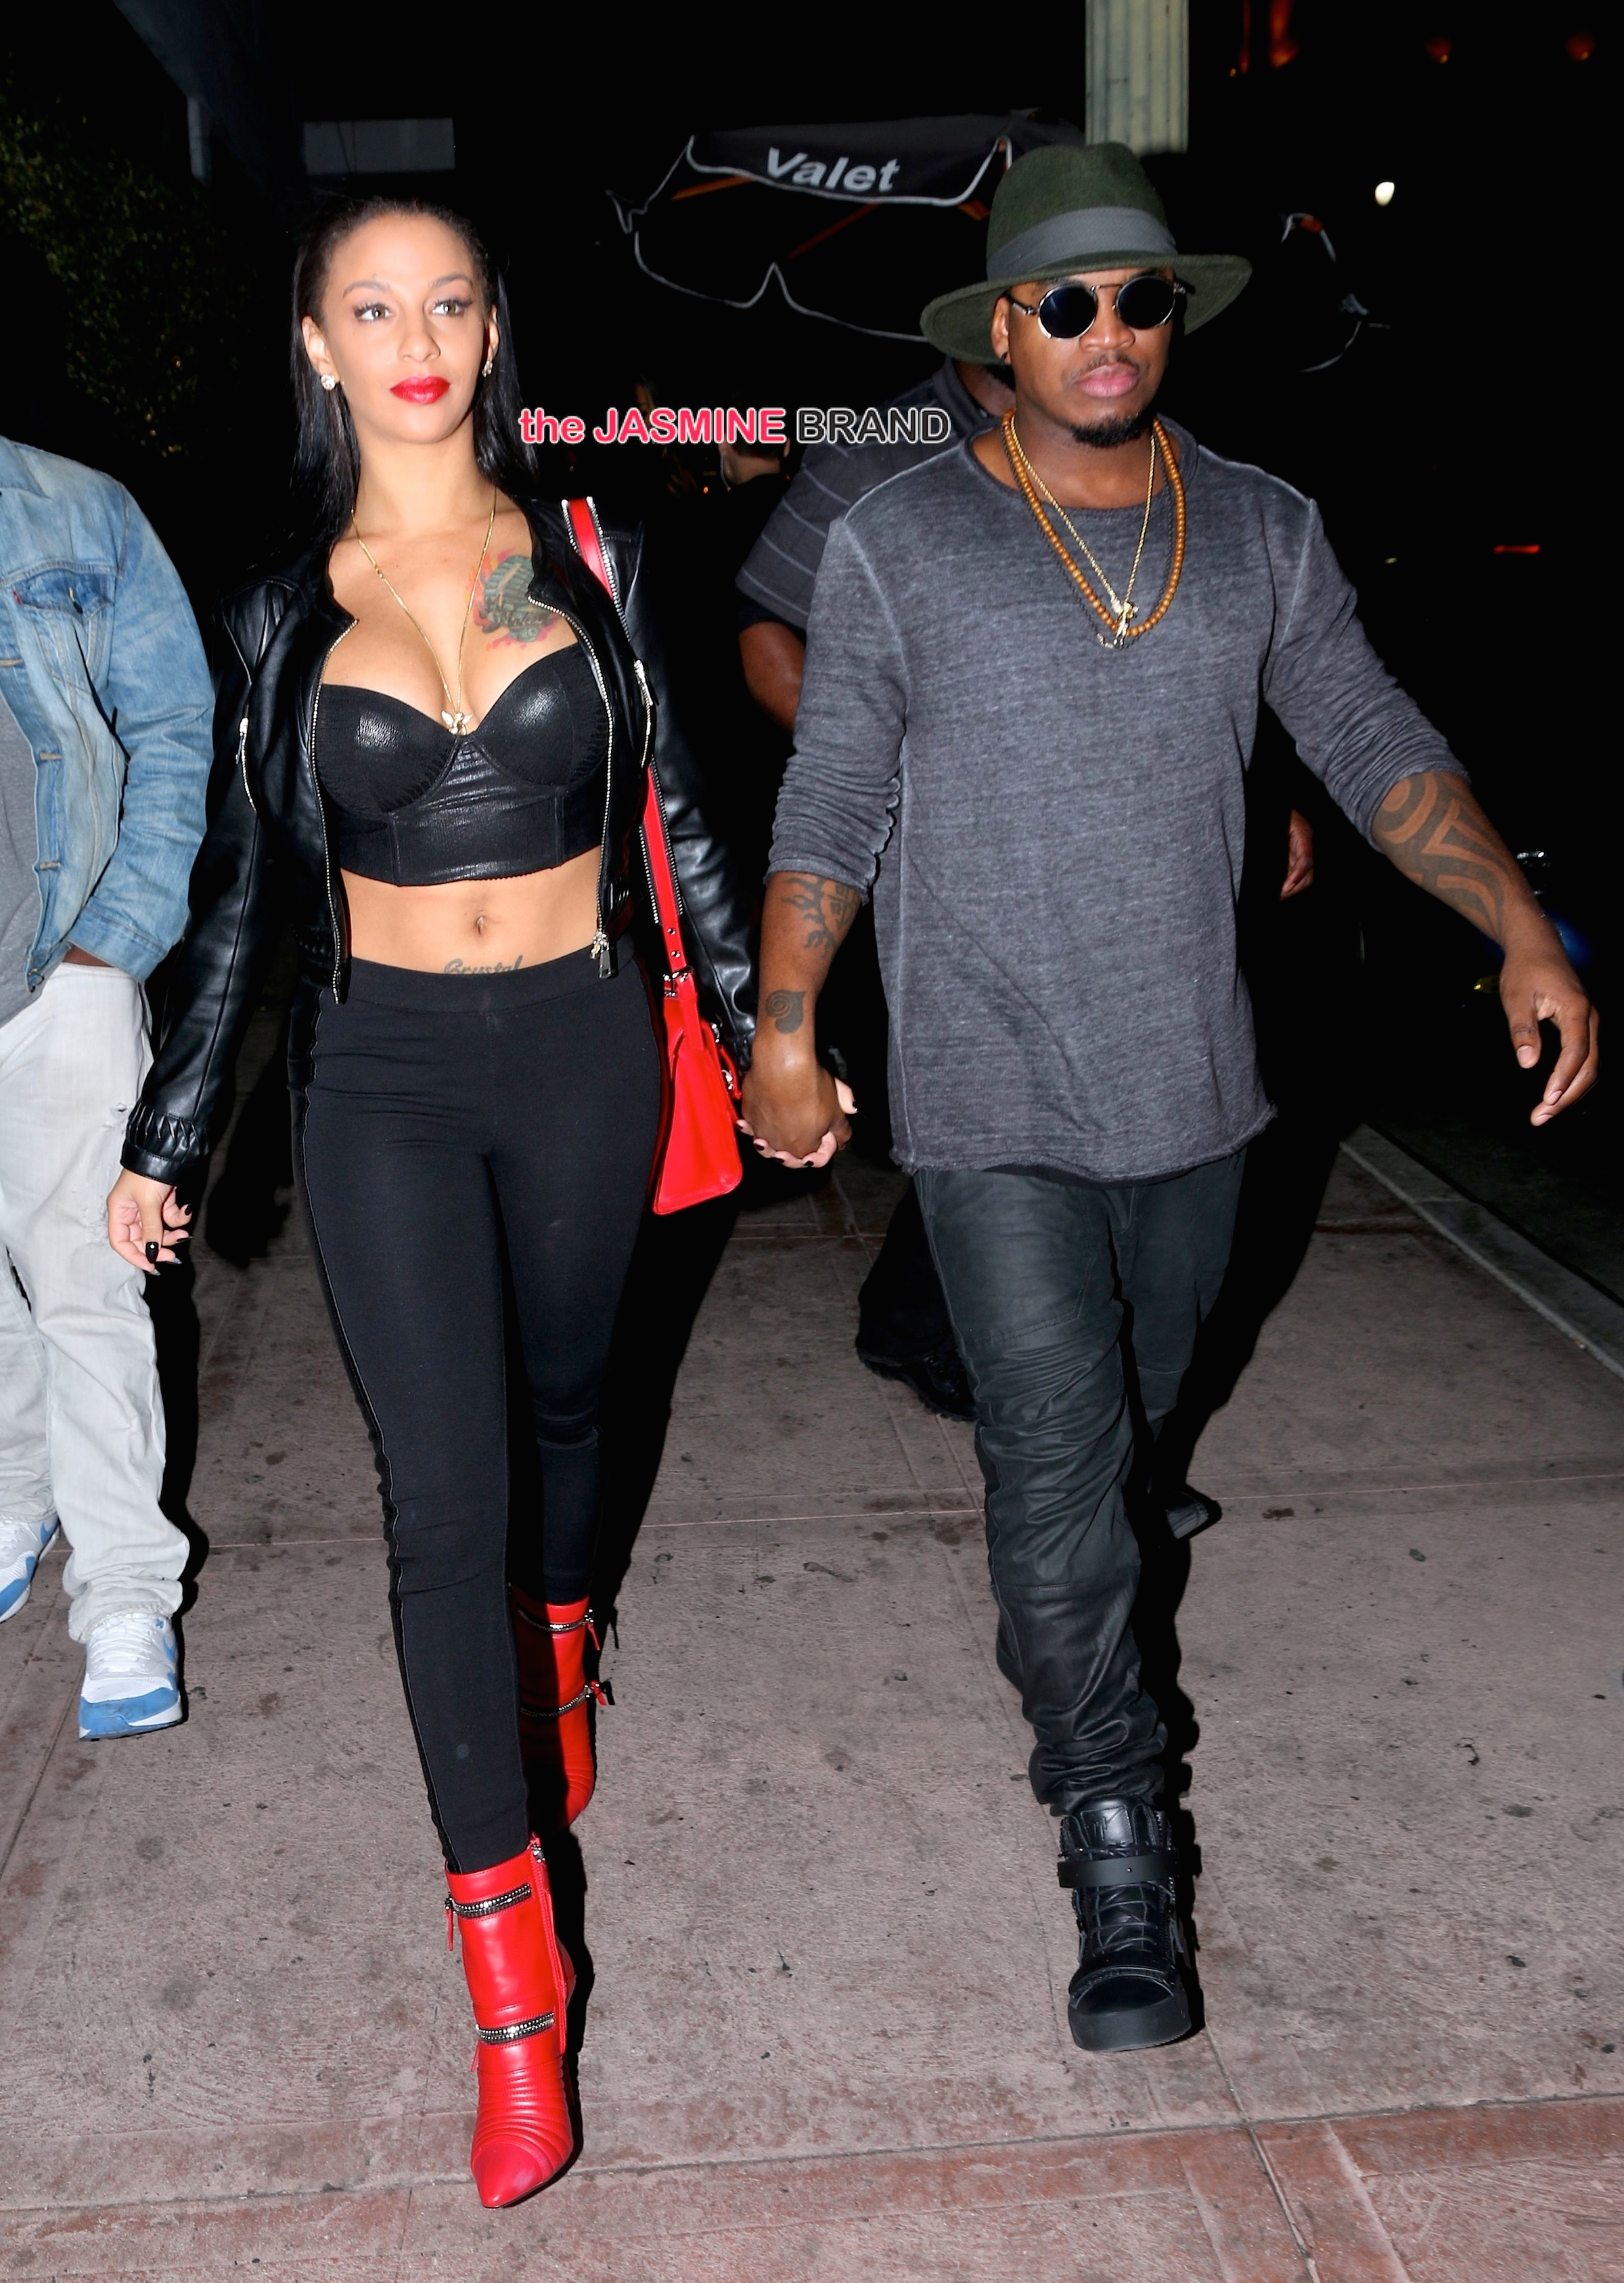 Ne-Yo and Mohammad Molaei Concert Arrivals at Project Nightclub in Hollywood - November 26, 2014